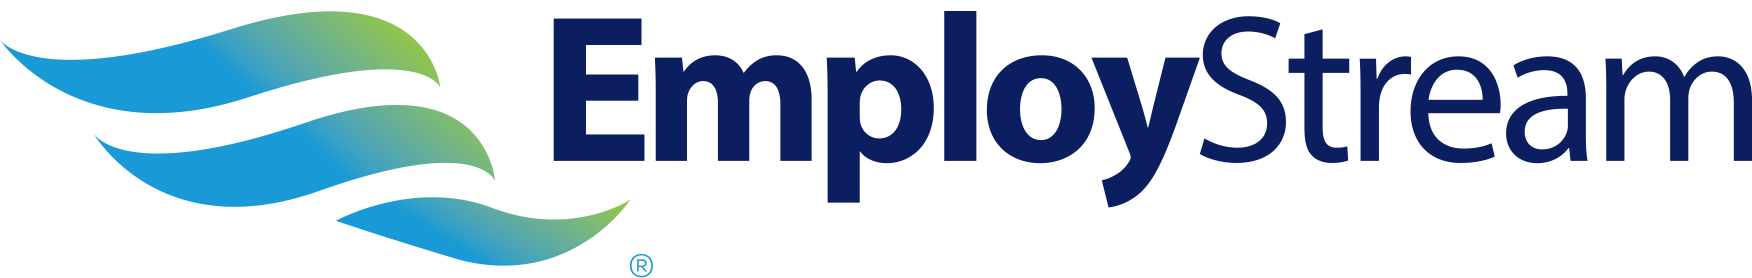 employ_logo.png